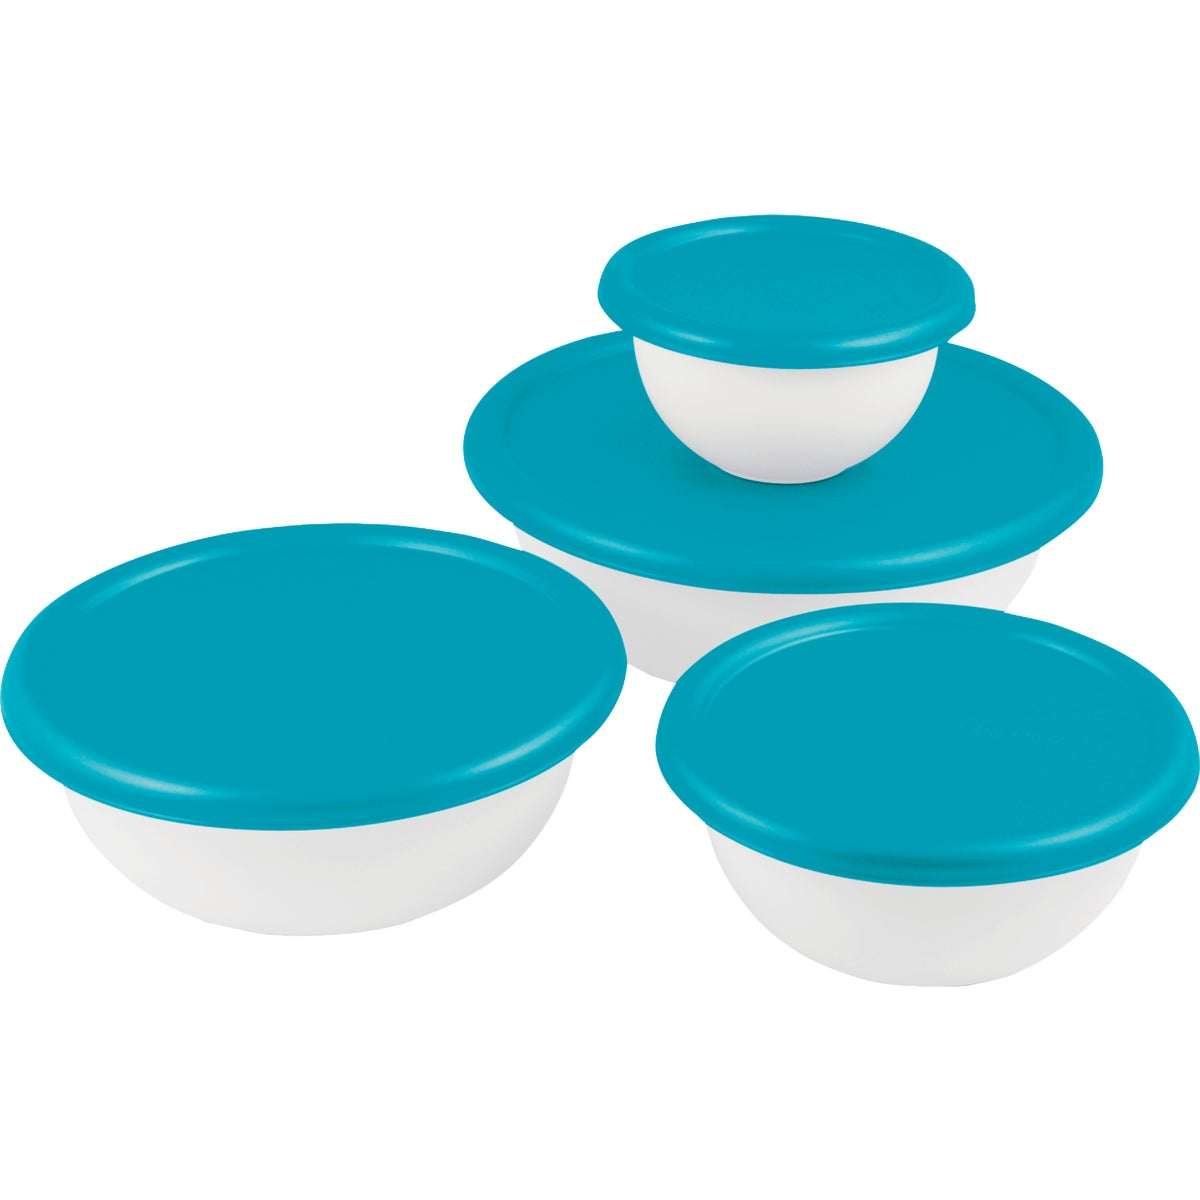 8PC COVERED BOWL SET - 07479406 by Sterilite Corp